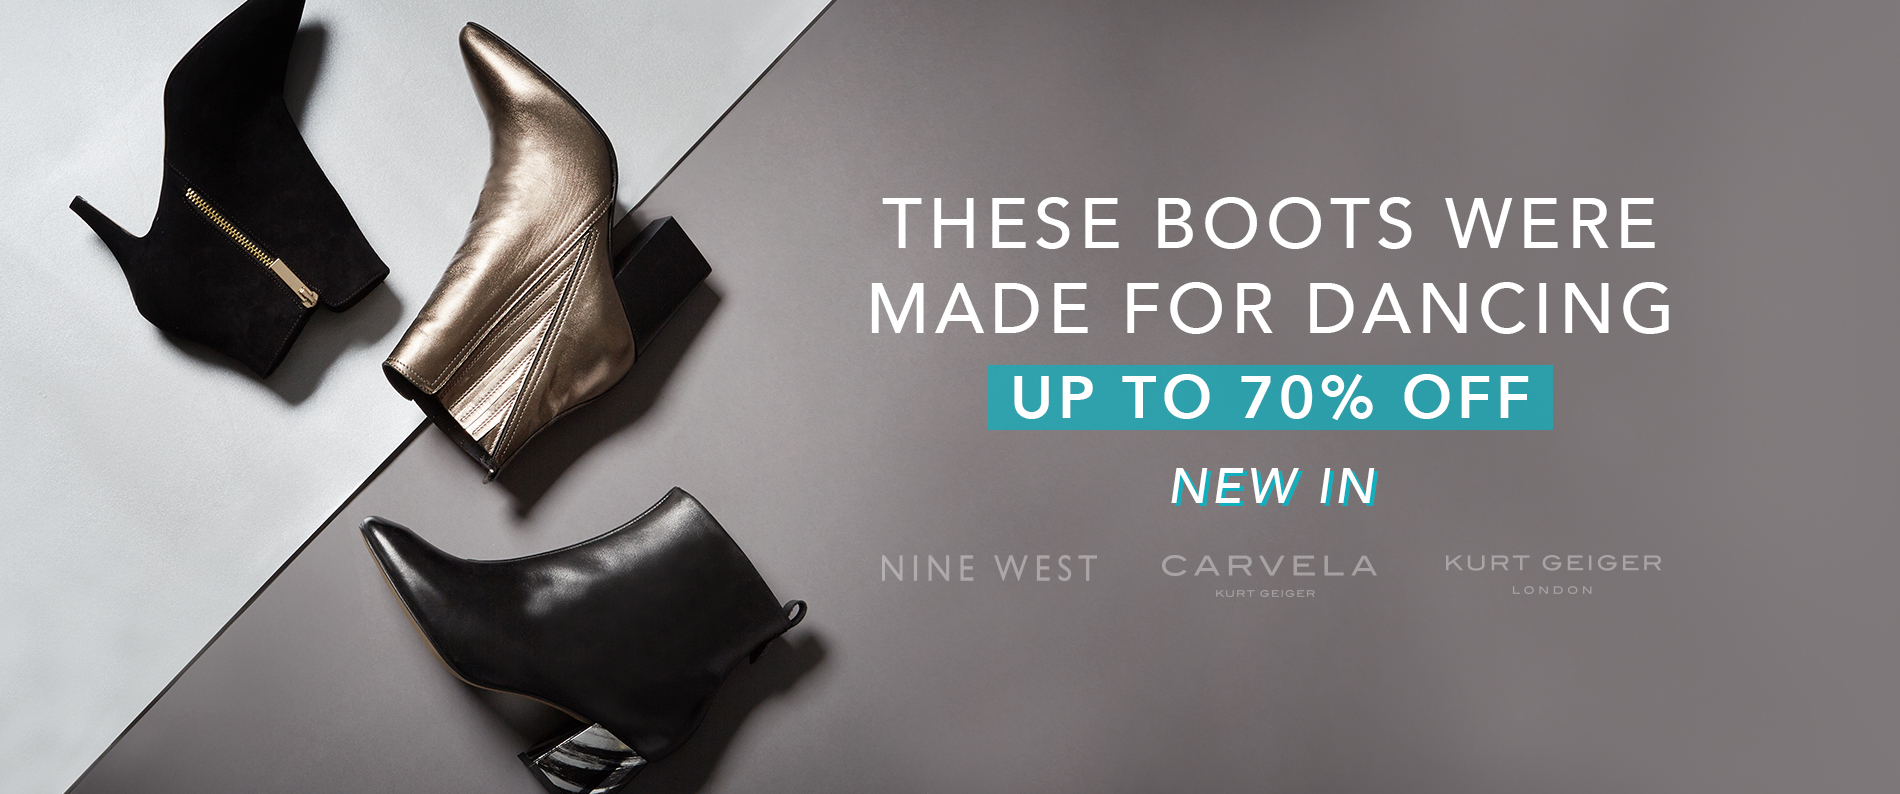 These boots were made for dancing. Up to 70% off